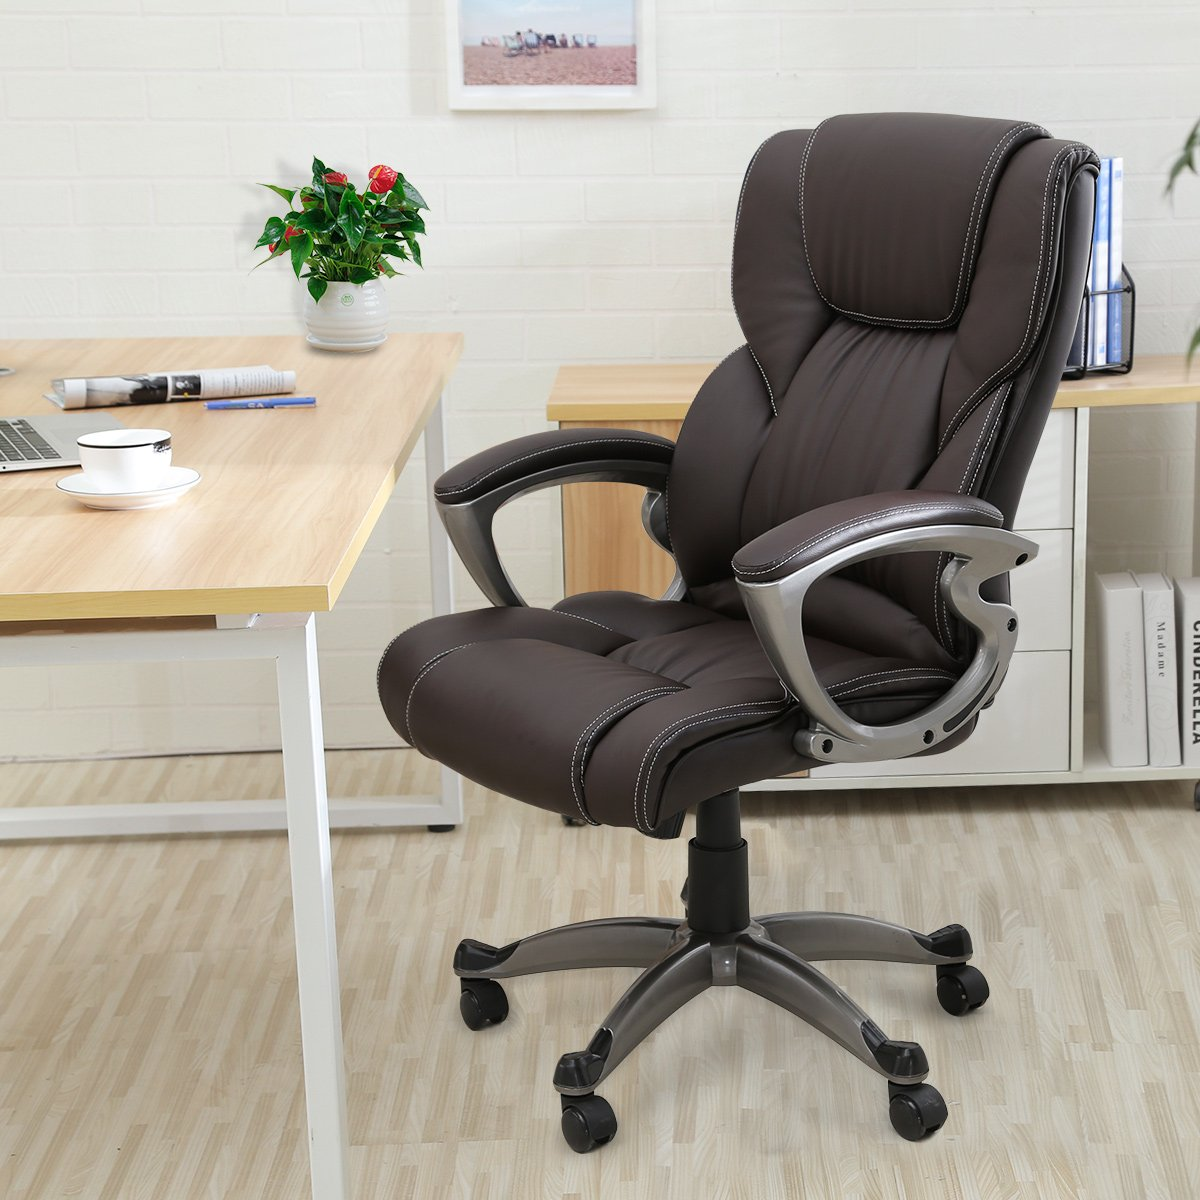 YAMASORO Leather Office Chair High Back Computer Chair for Office Desk Adjustable Swivel Chair with Arms Brown